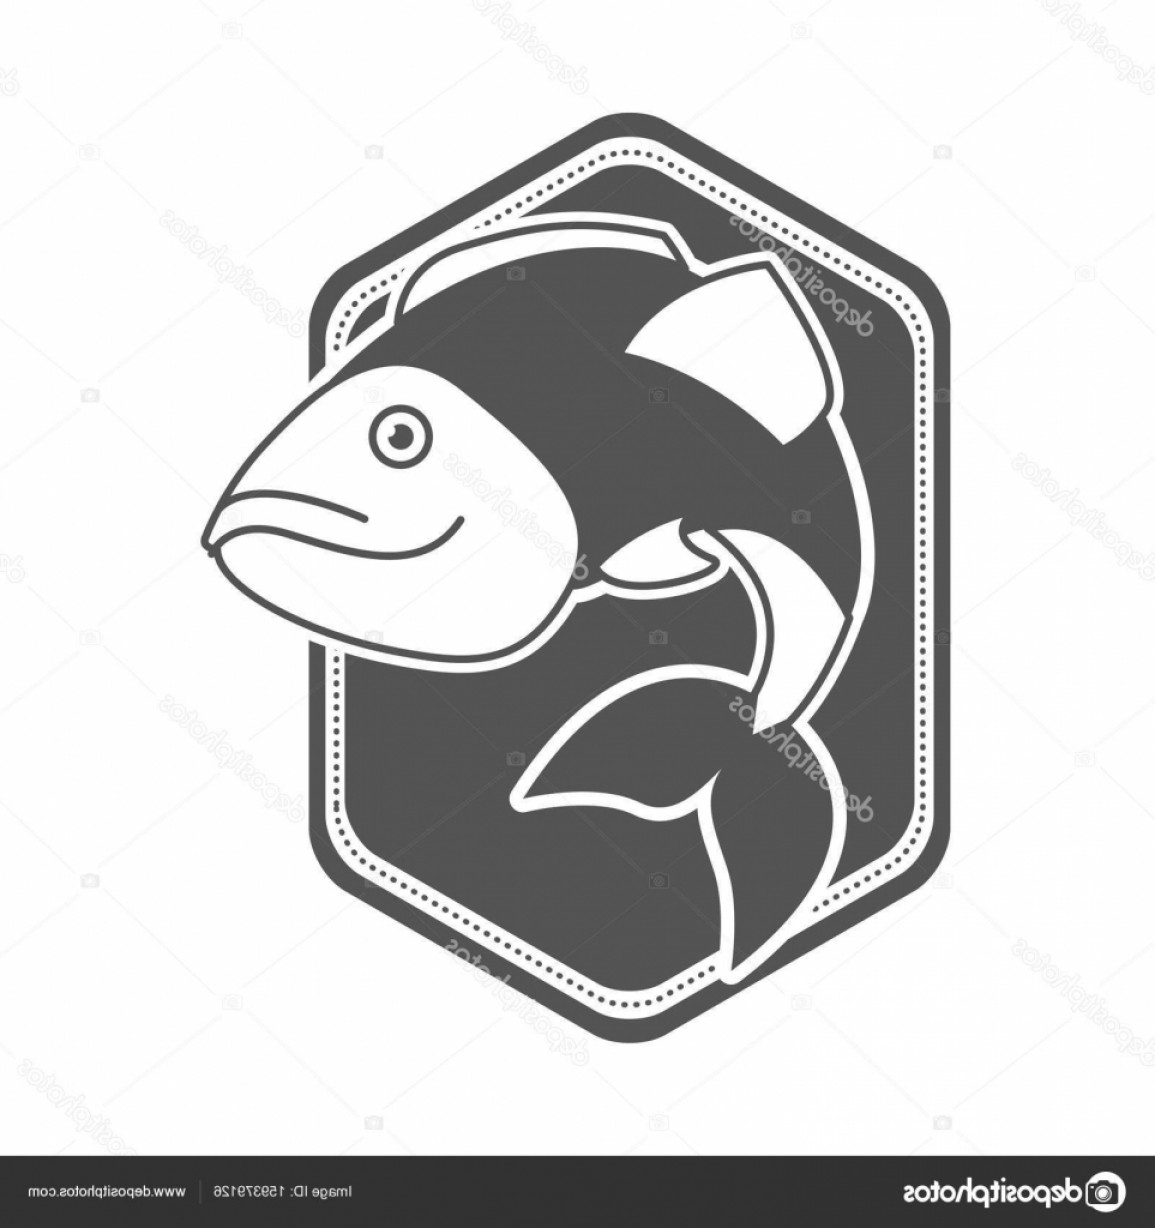 Largemouth Bass Silhouette Vector: Stock Illustration Monochrome Silhouette Of Diamond Shape